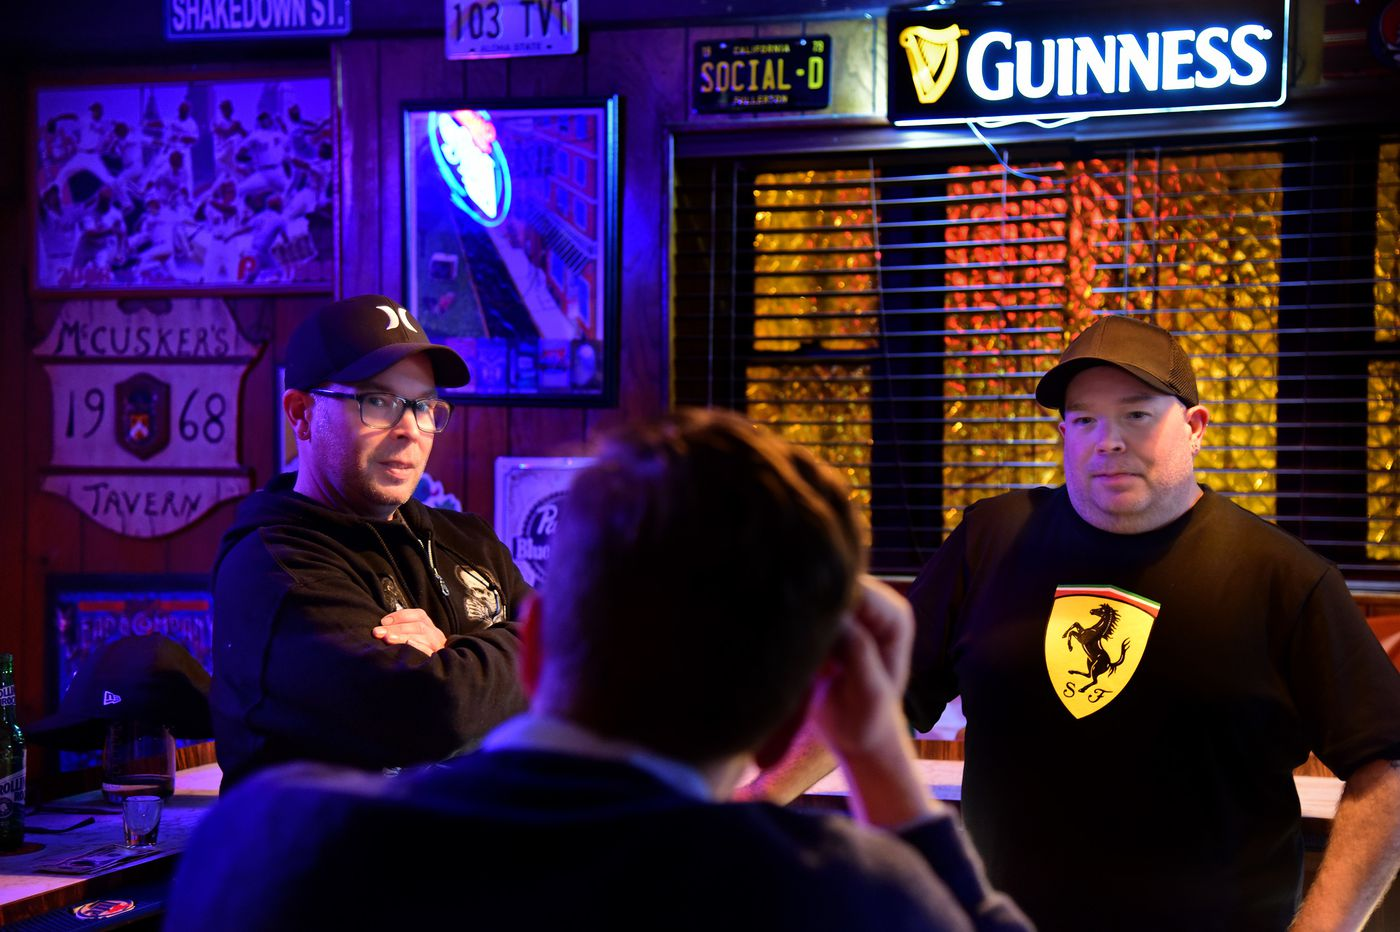 Why the owners of McCusker's Tavern say it's not a South Philly bar. (It is.)